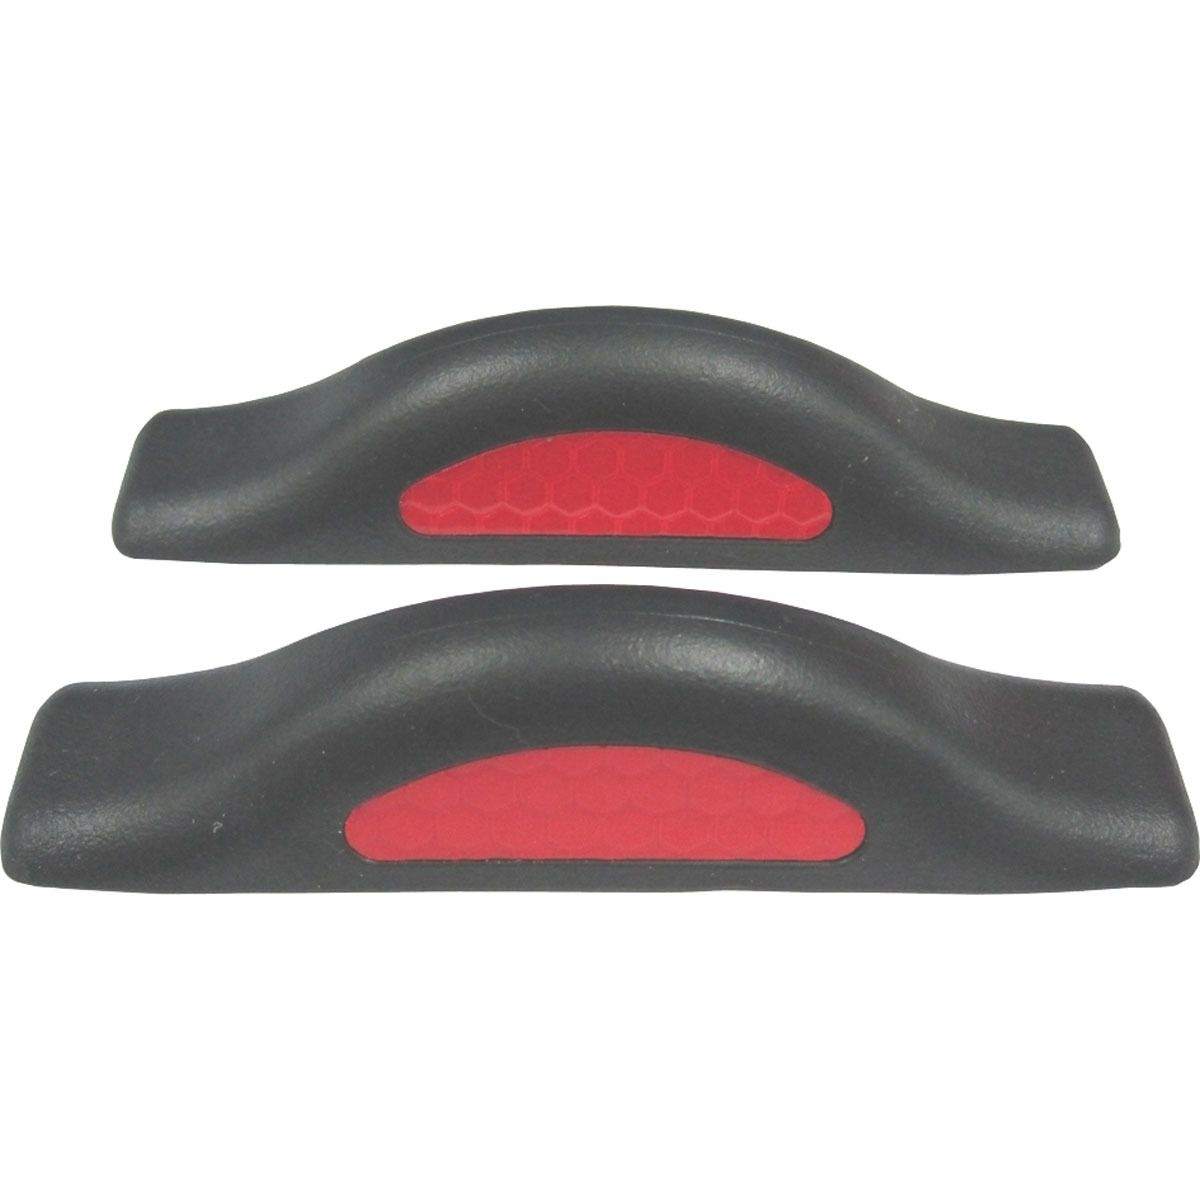 SET OF 2 REFLECTIVE DOOR GUARDS REFLECTIVE EDGE RED PROTECTORS UNIVERSAL SAFETY